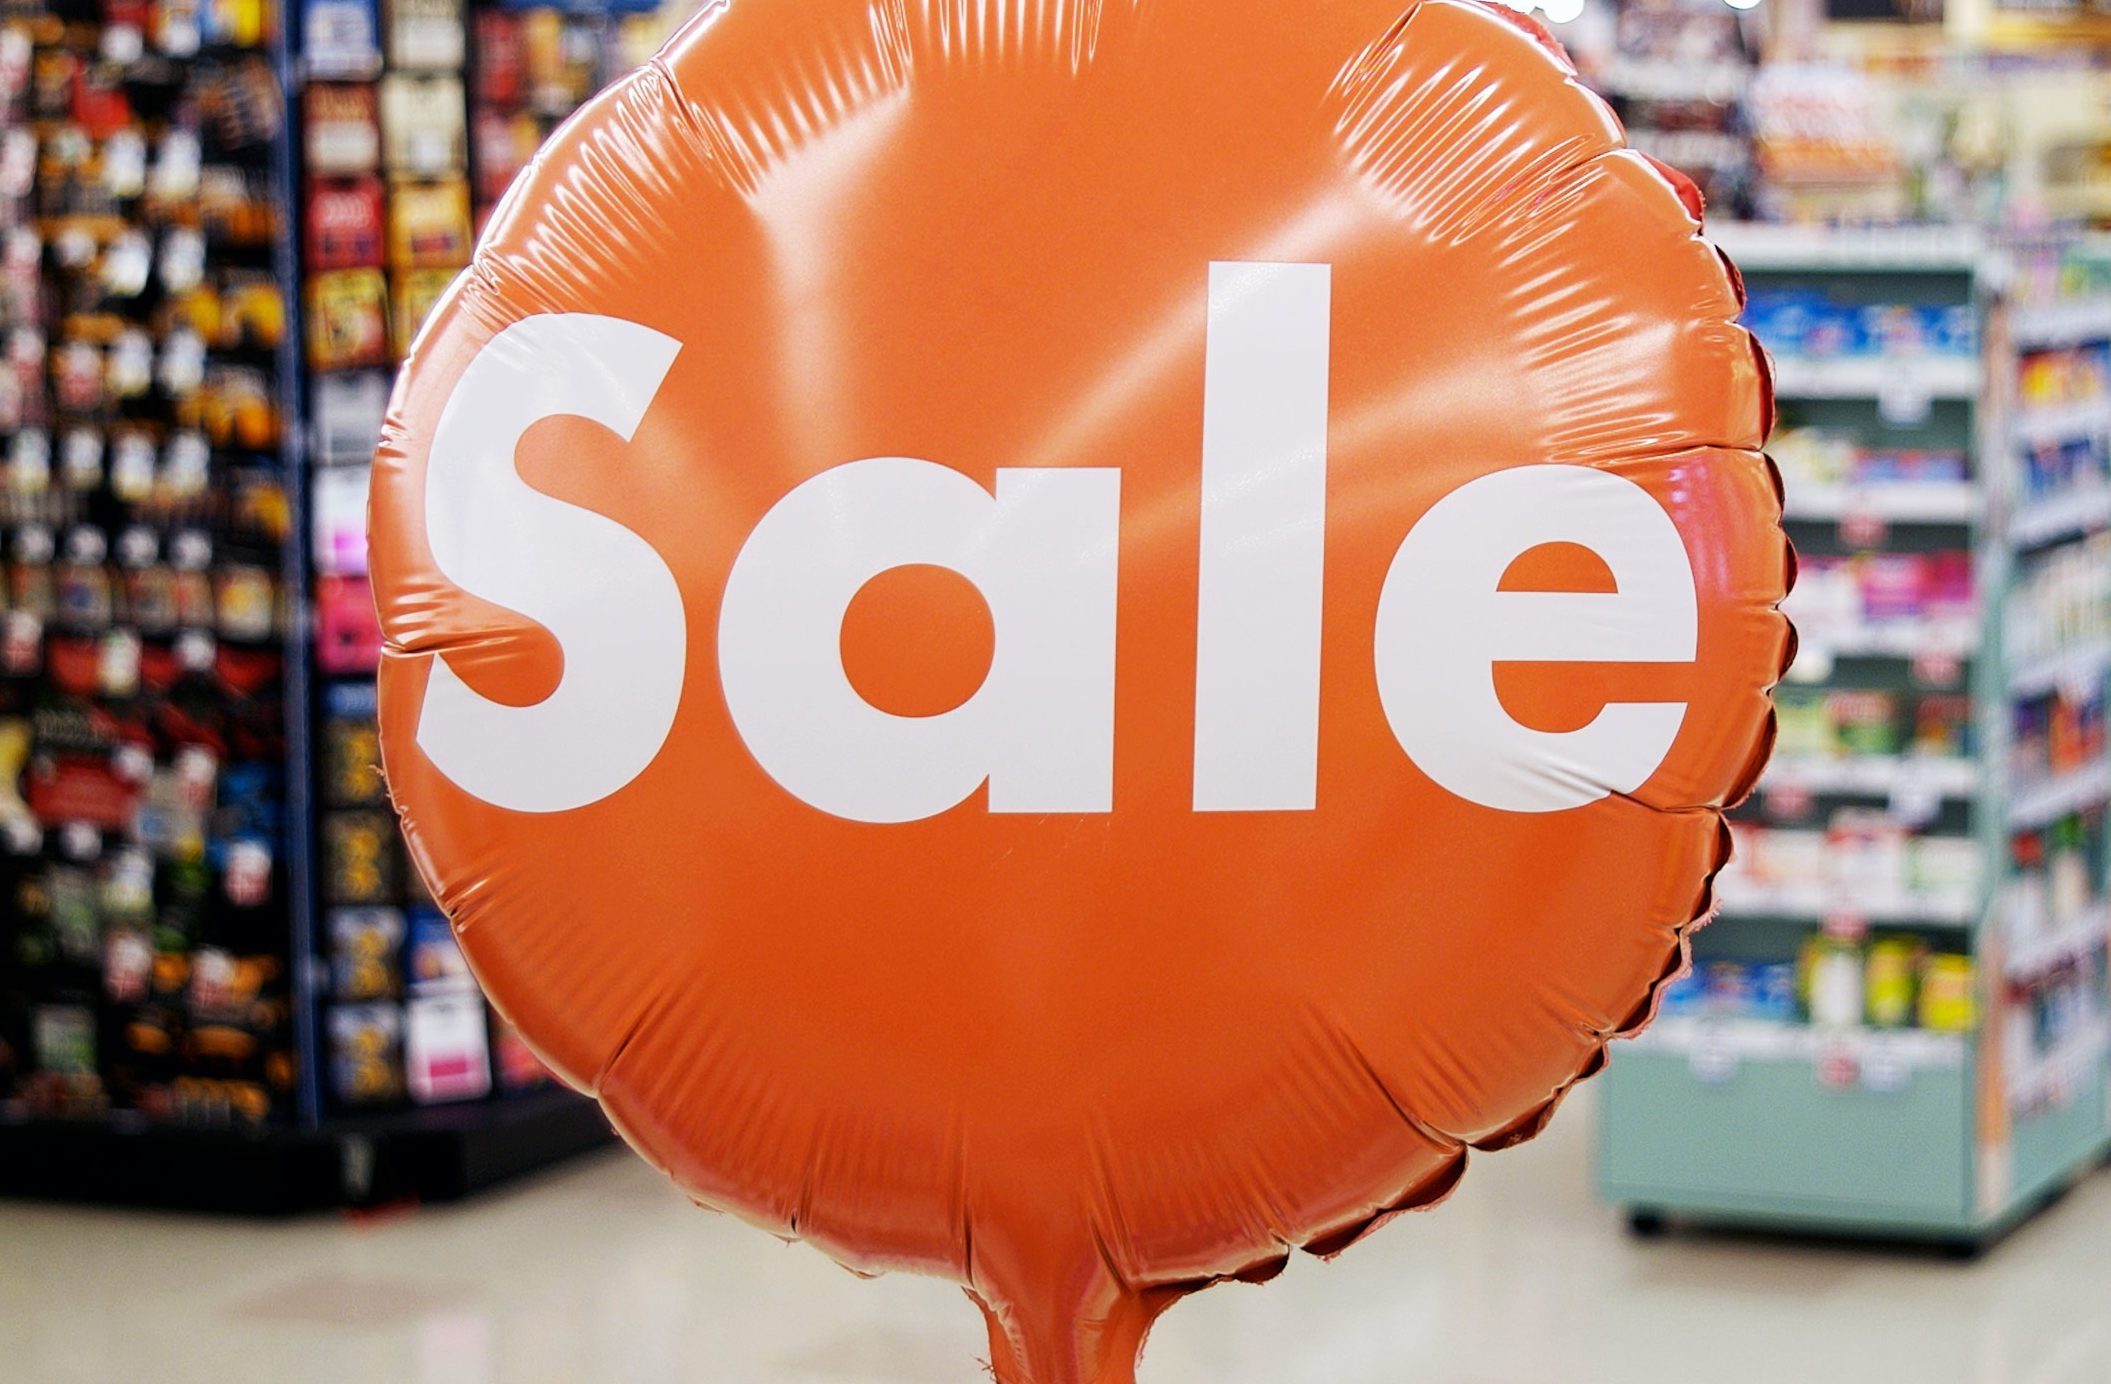 Orange sale sign in grocery store